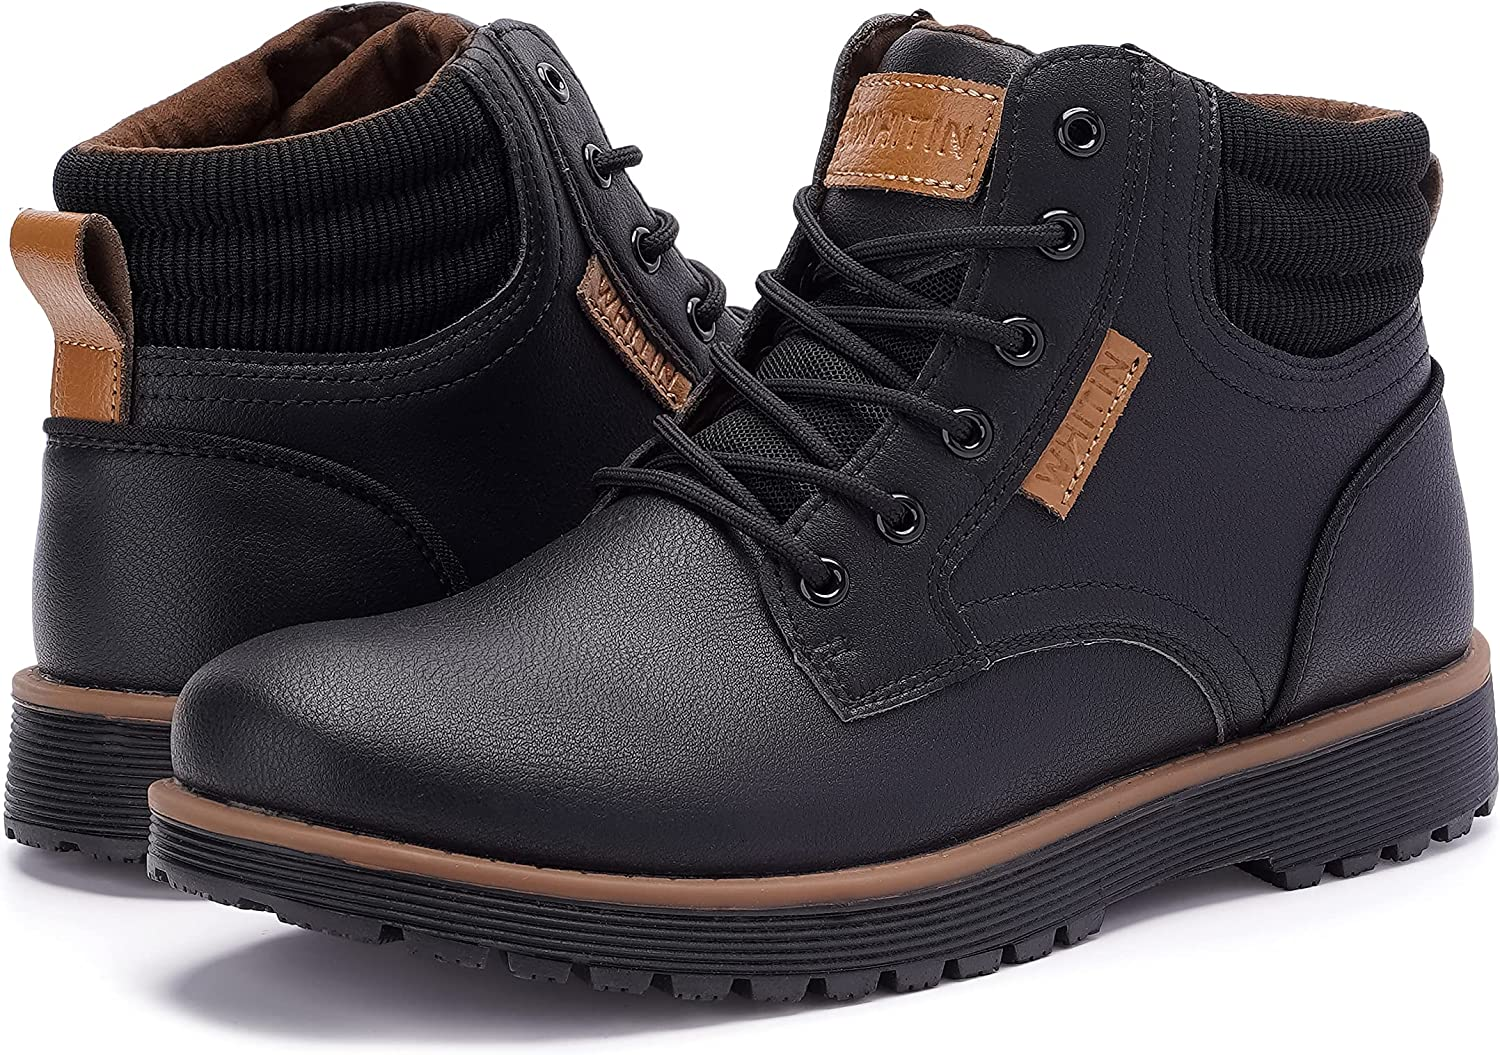 WHITIN Men's Waterproof Max 84% OFF Boots Cold-Weather Topics on TV